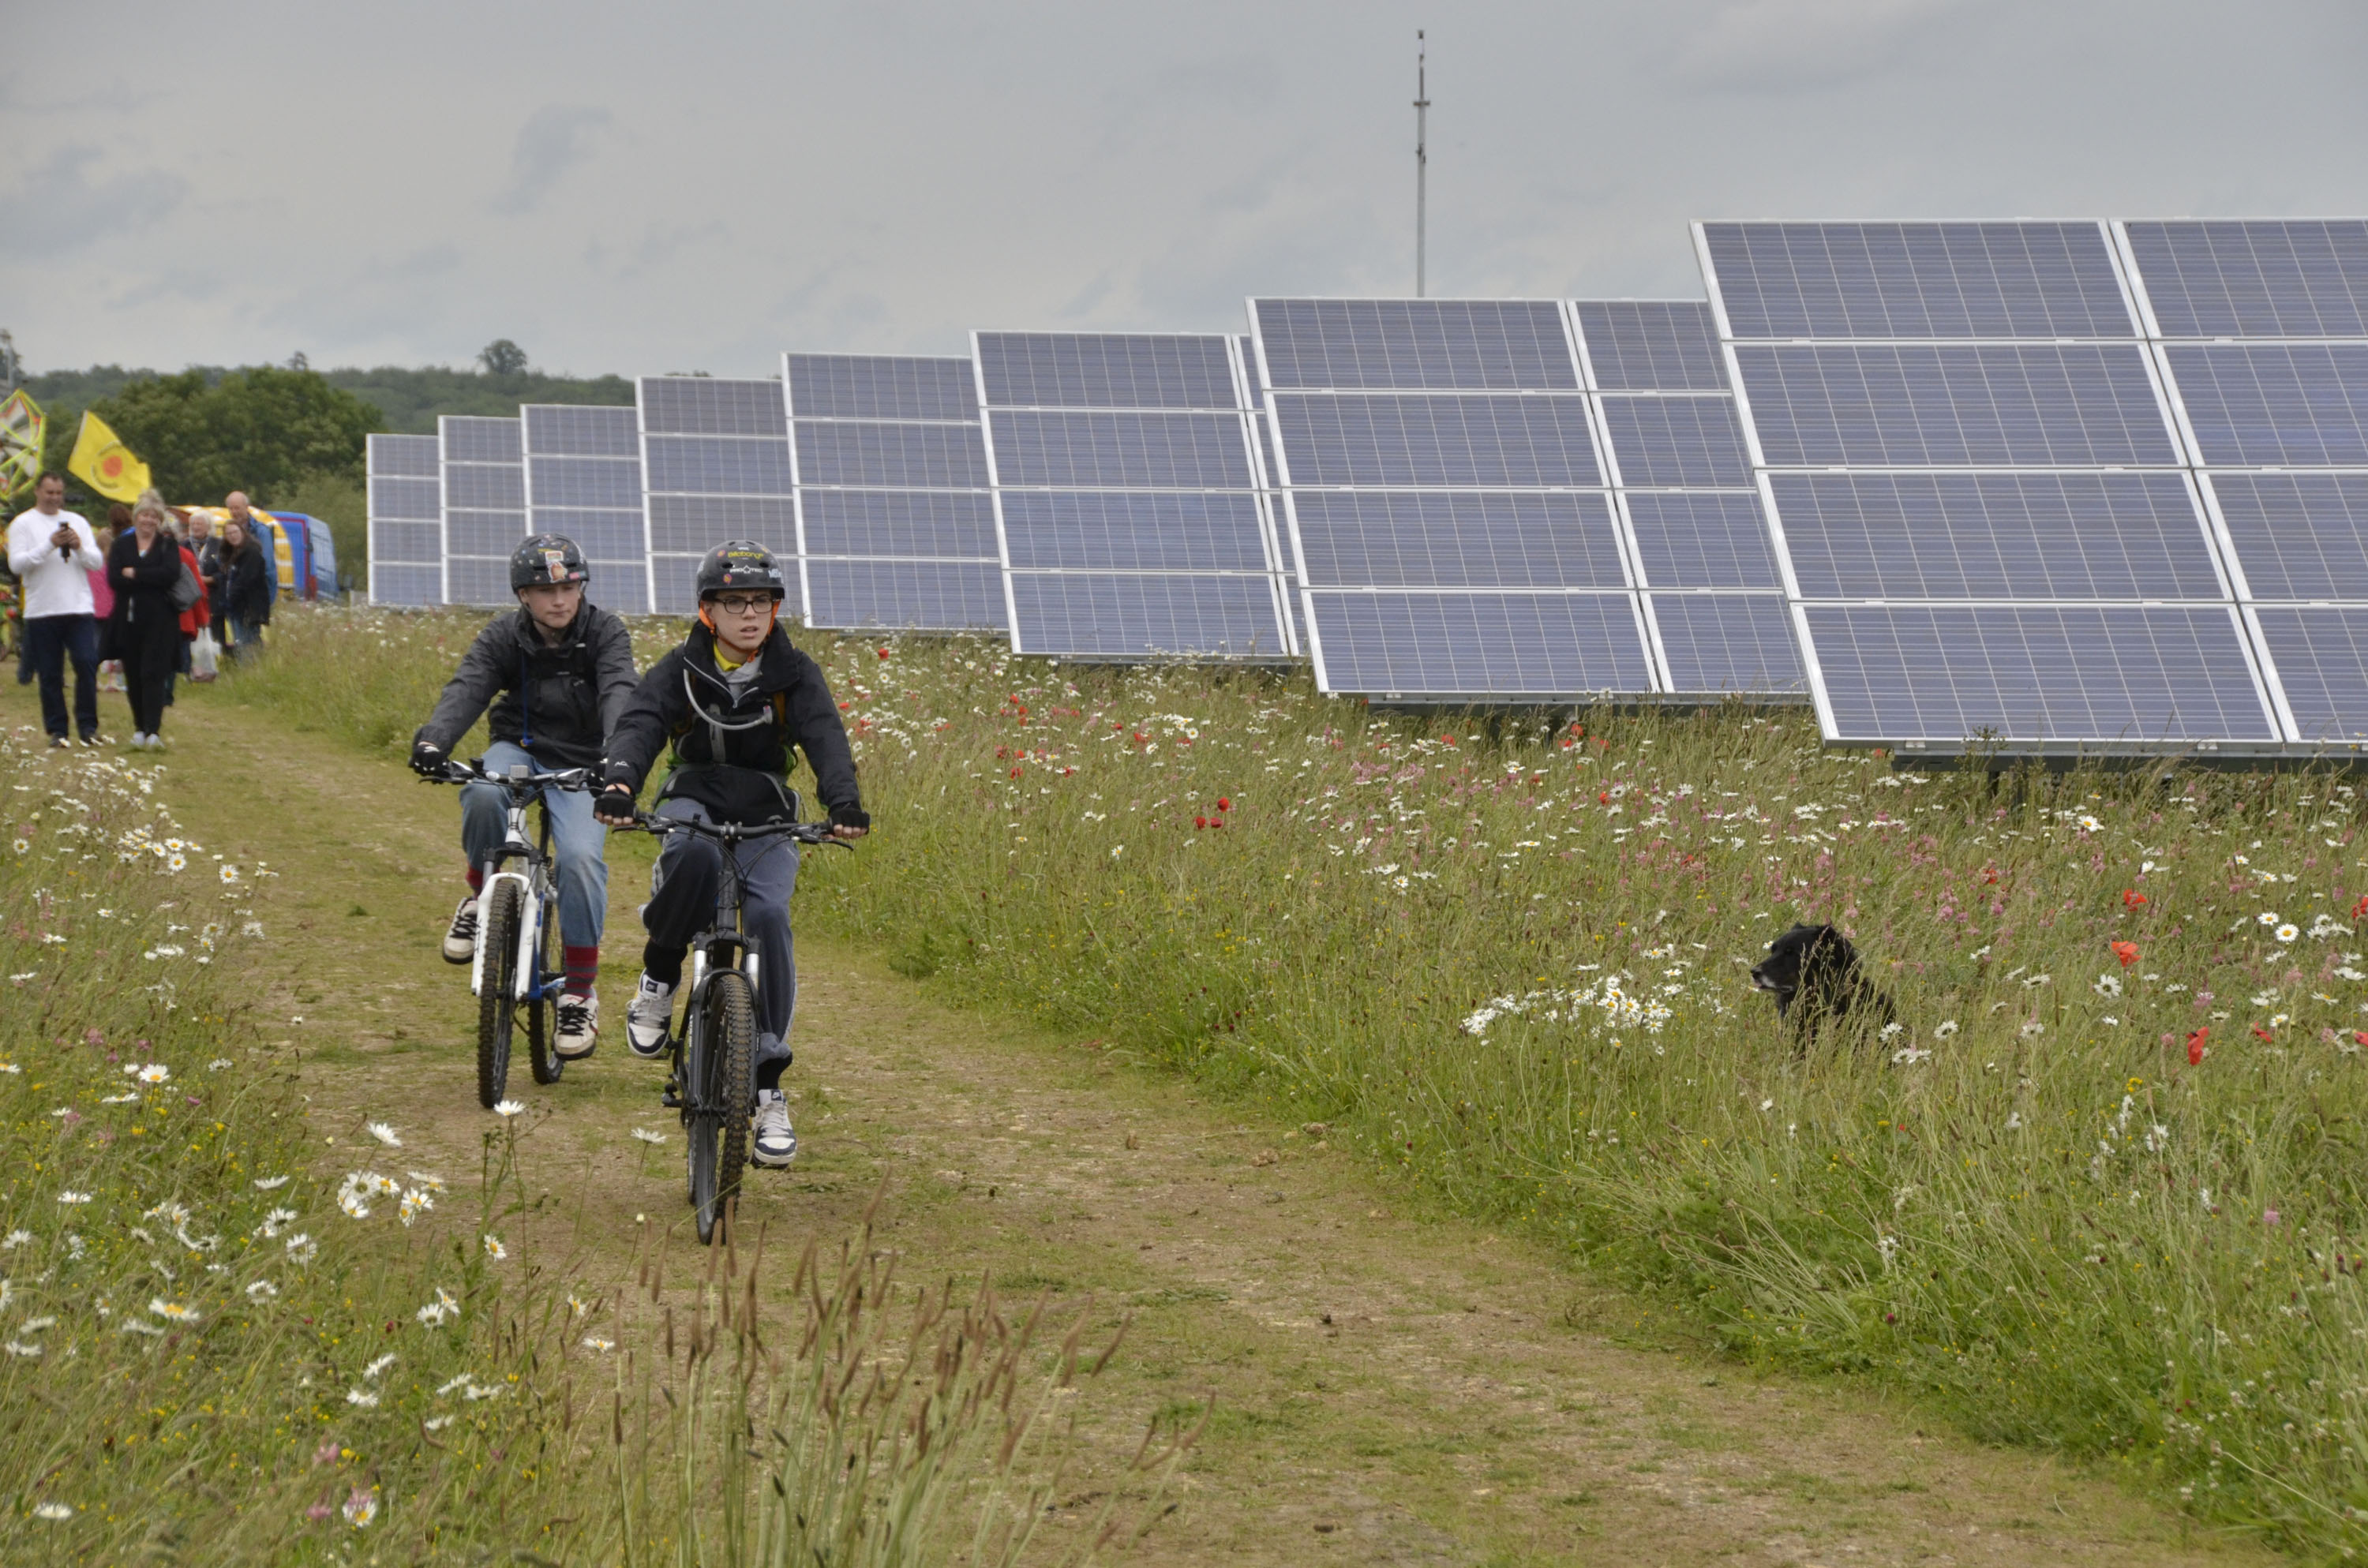 Community-Owned Solar Farm, Westmill Solar Cooperative, UK (Source: Wikipedia)